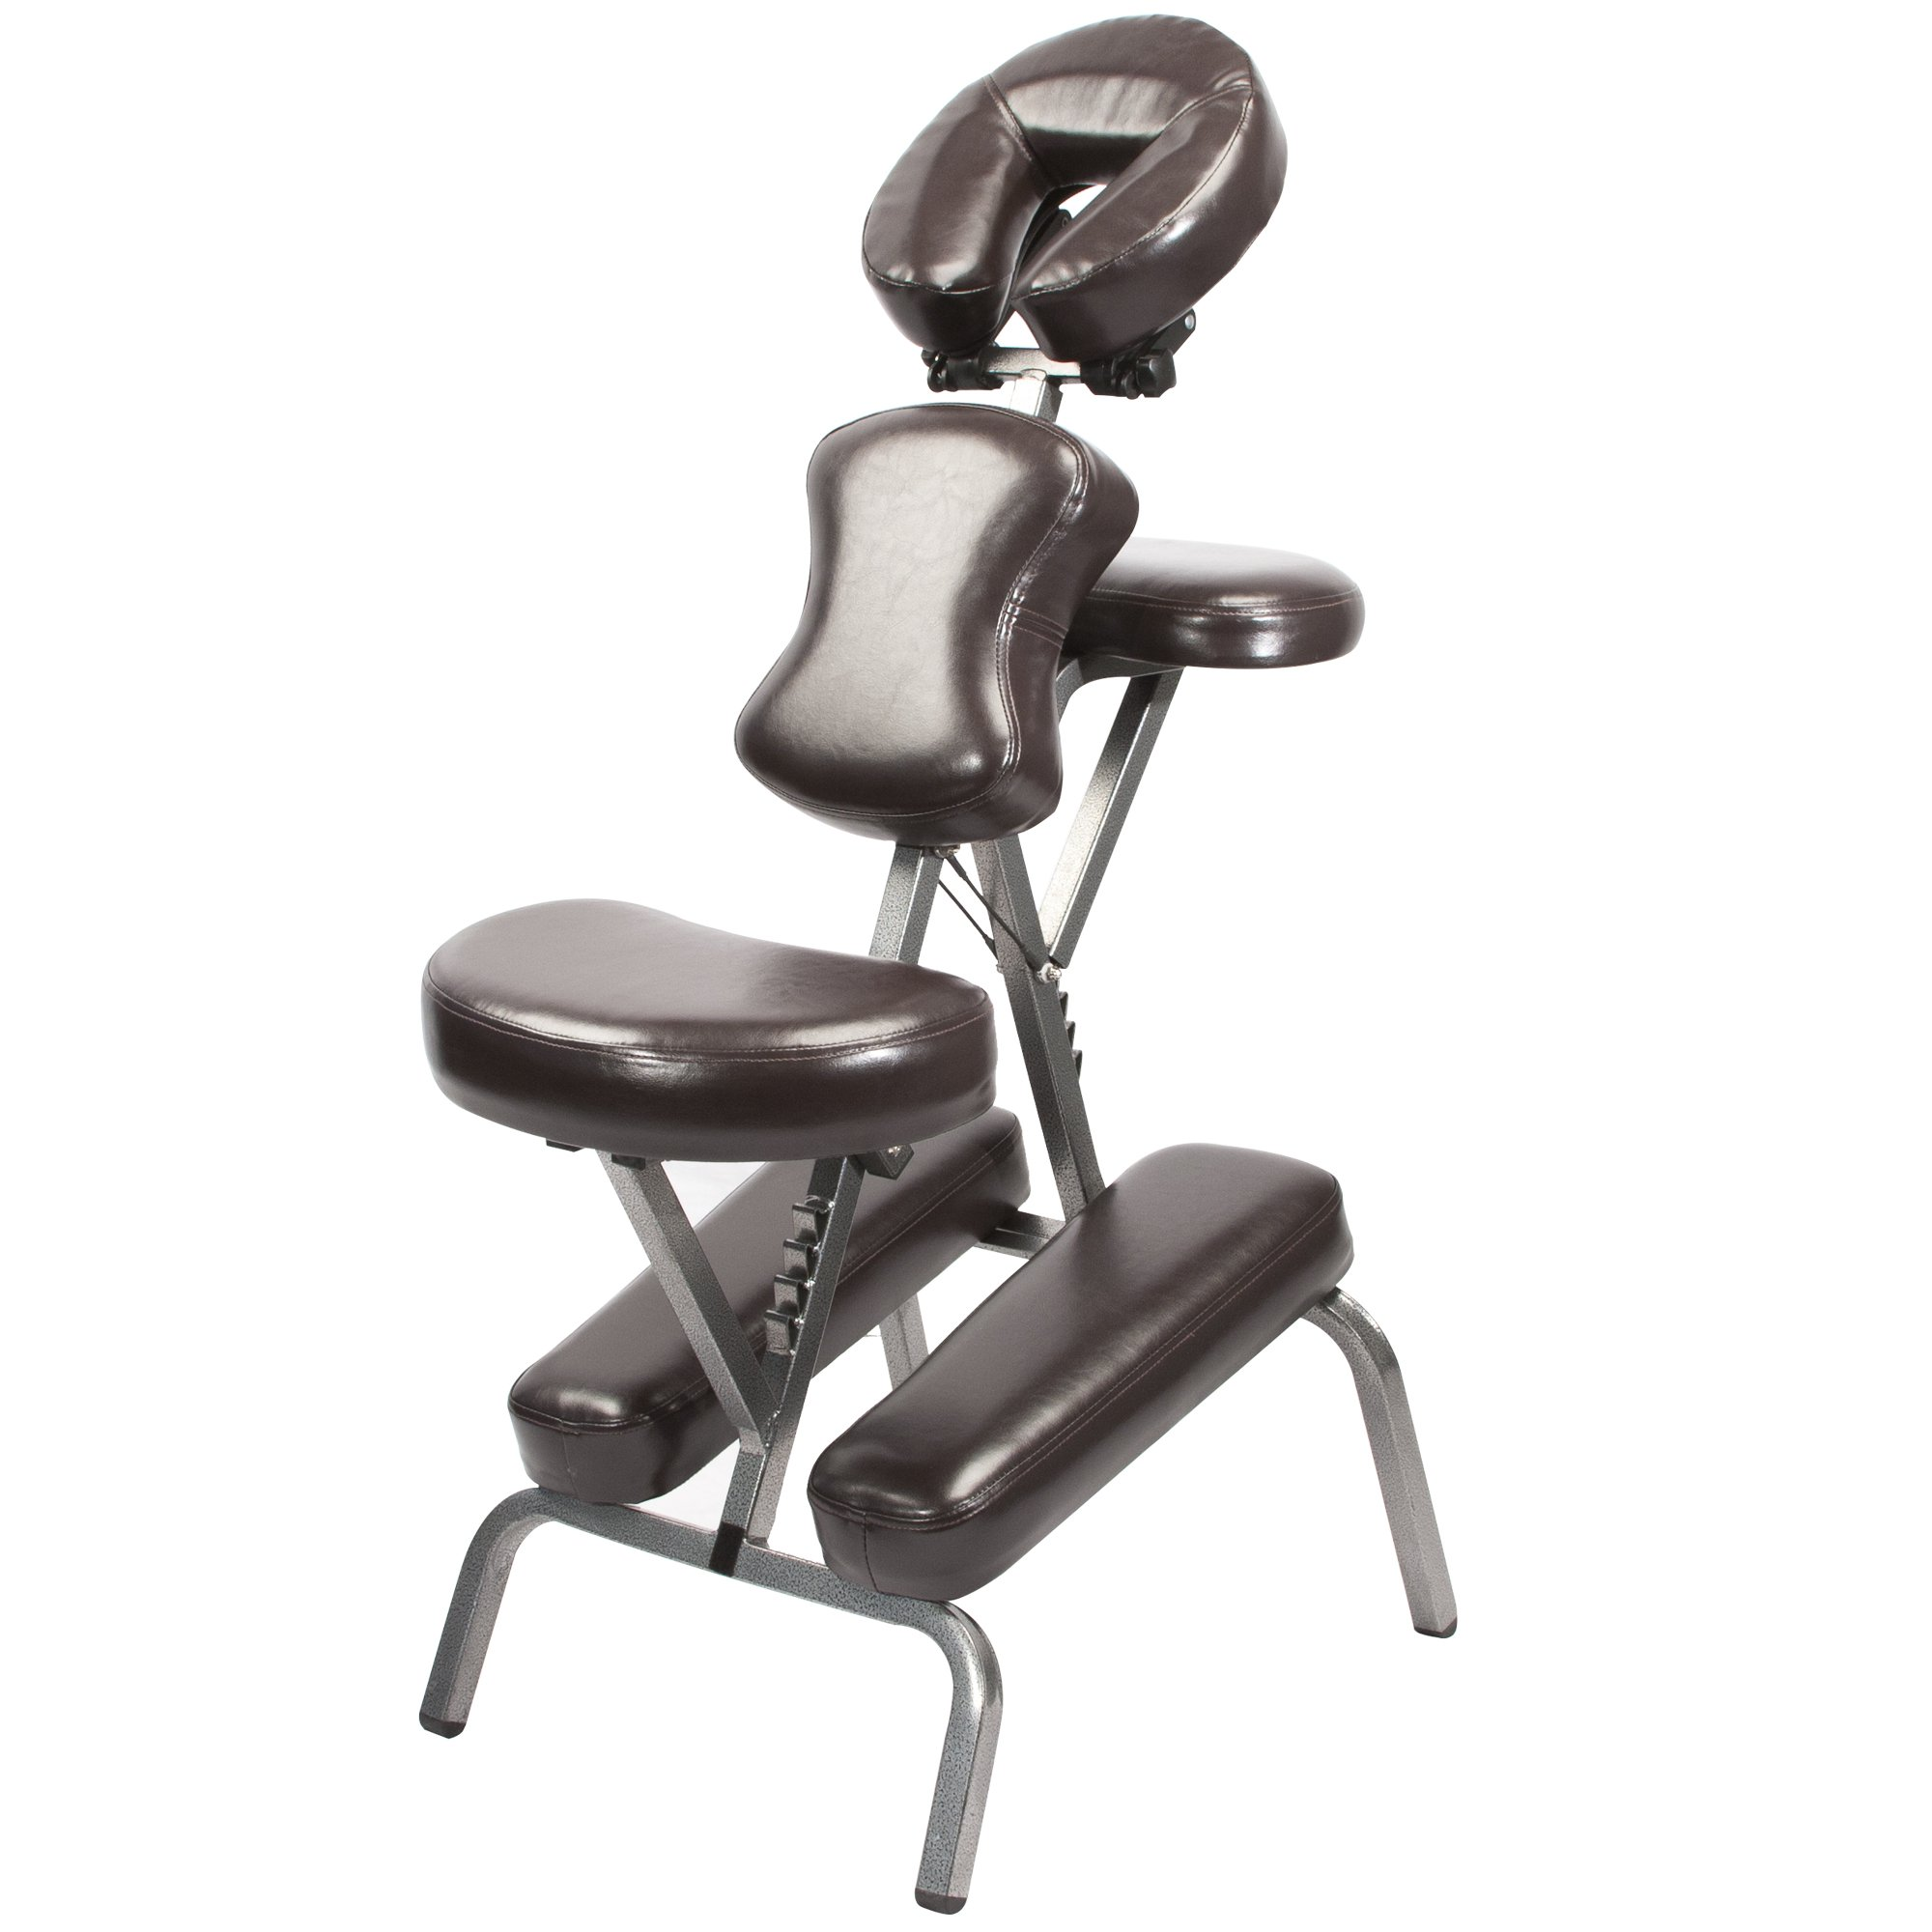 Master Massage Bedford Portable Light Weight Massage Chair with Carrying Case by Master Massage